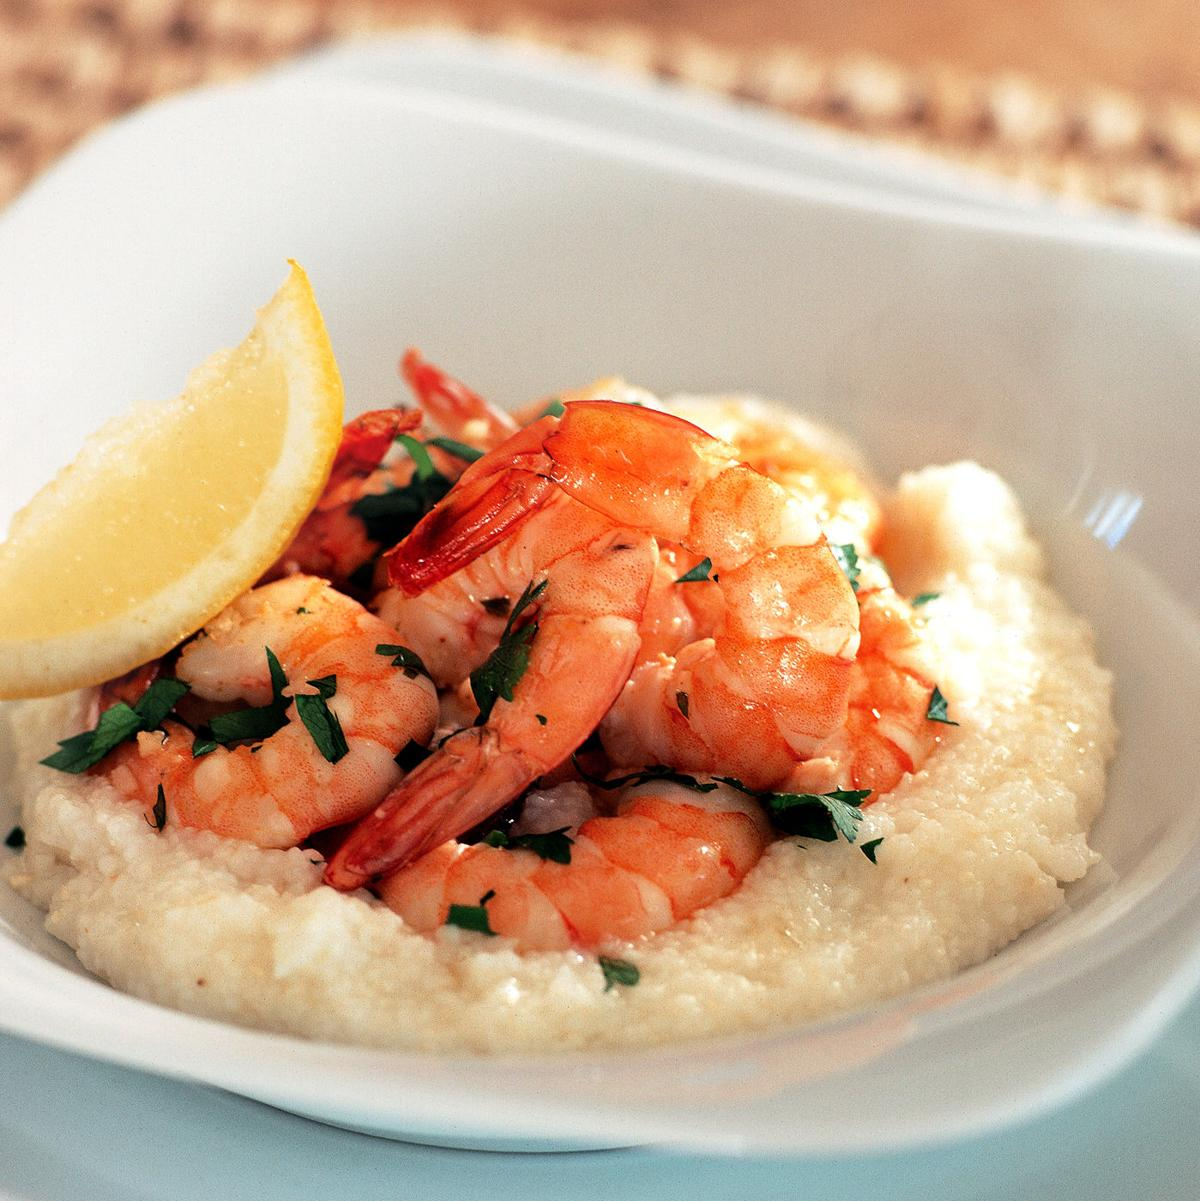 15 restaurants compete for shrimp-and-grits title